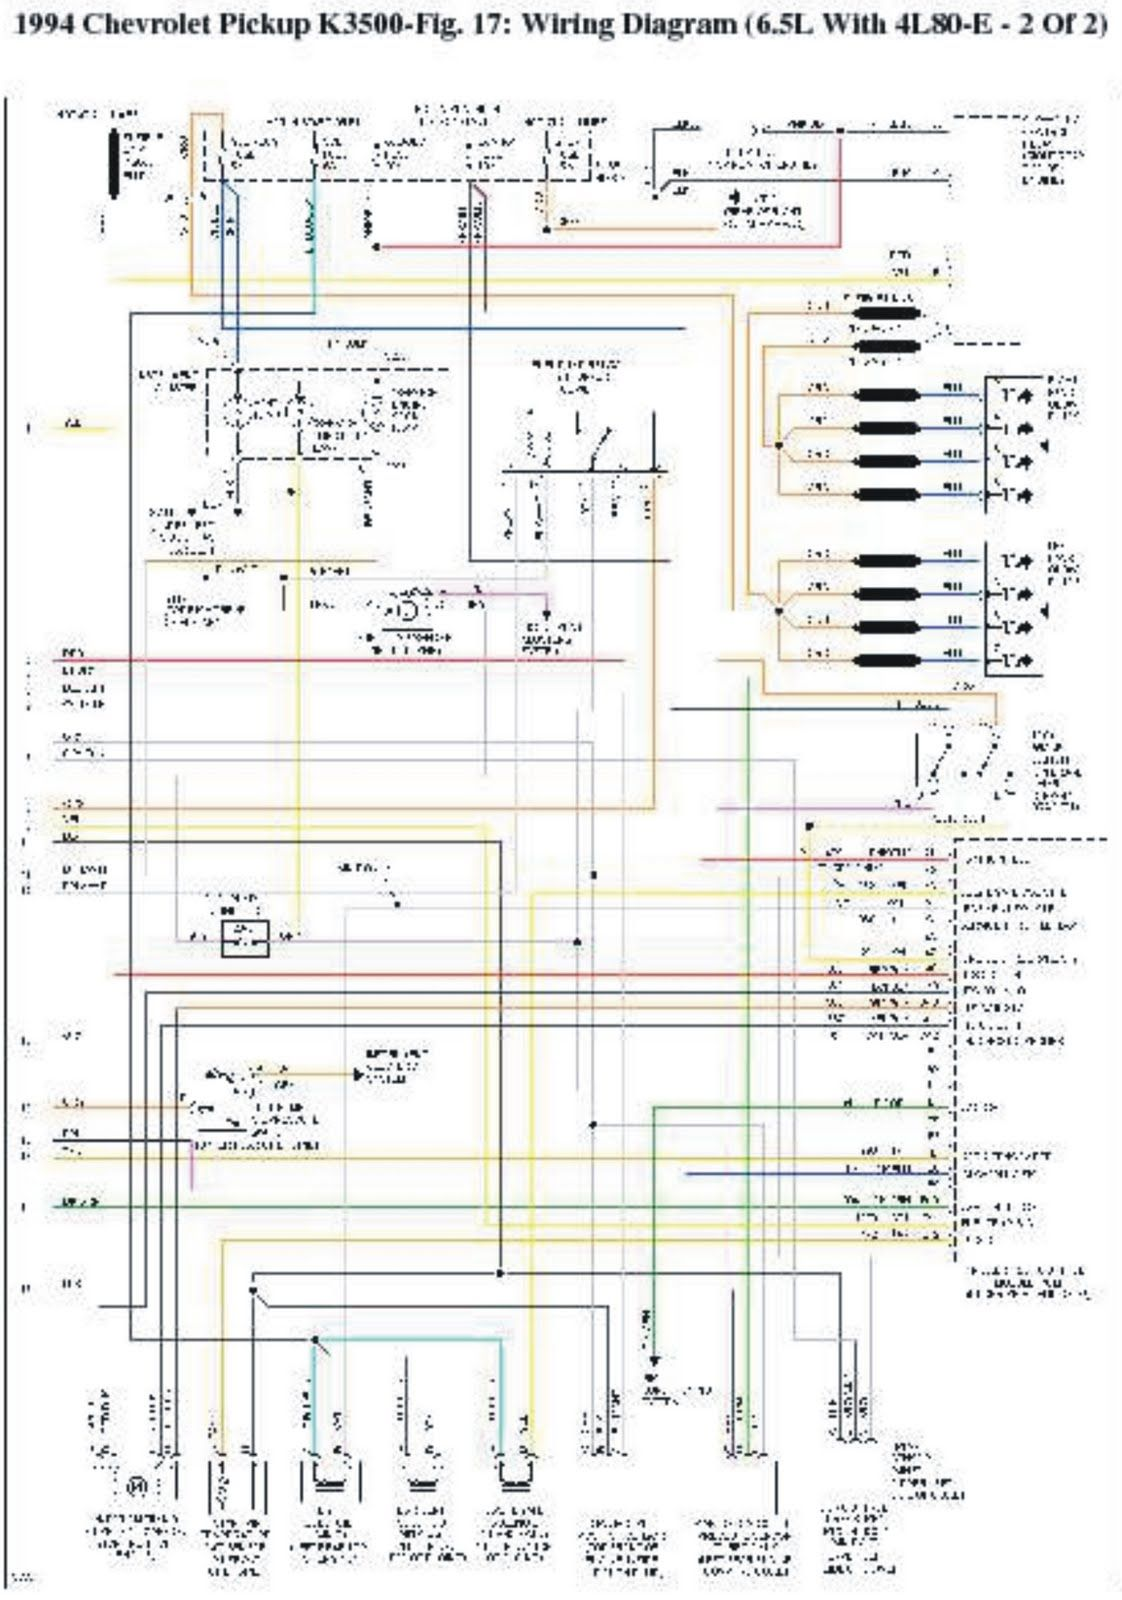 1994 chevrolet pick-up k3500 wiring diagrams | wiring | chevy 1500, 1994 chevy  1500, chevy silverado  pinterest